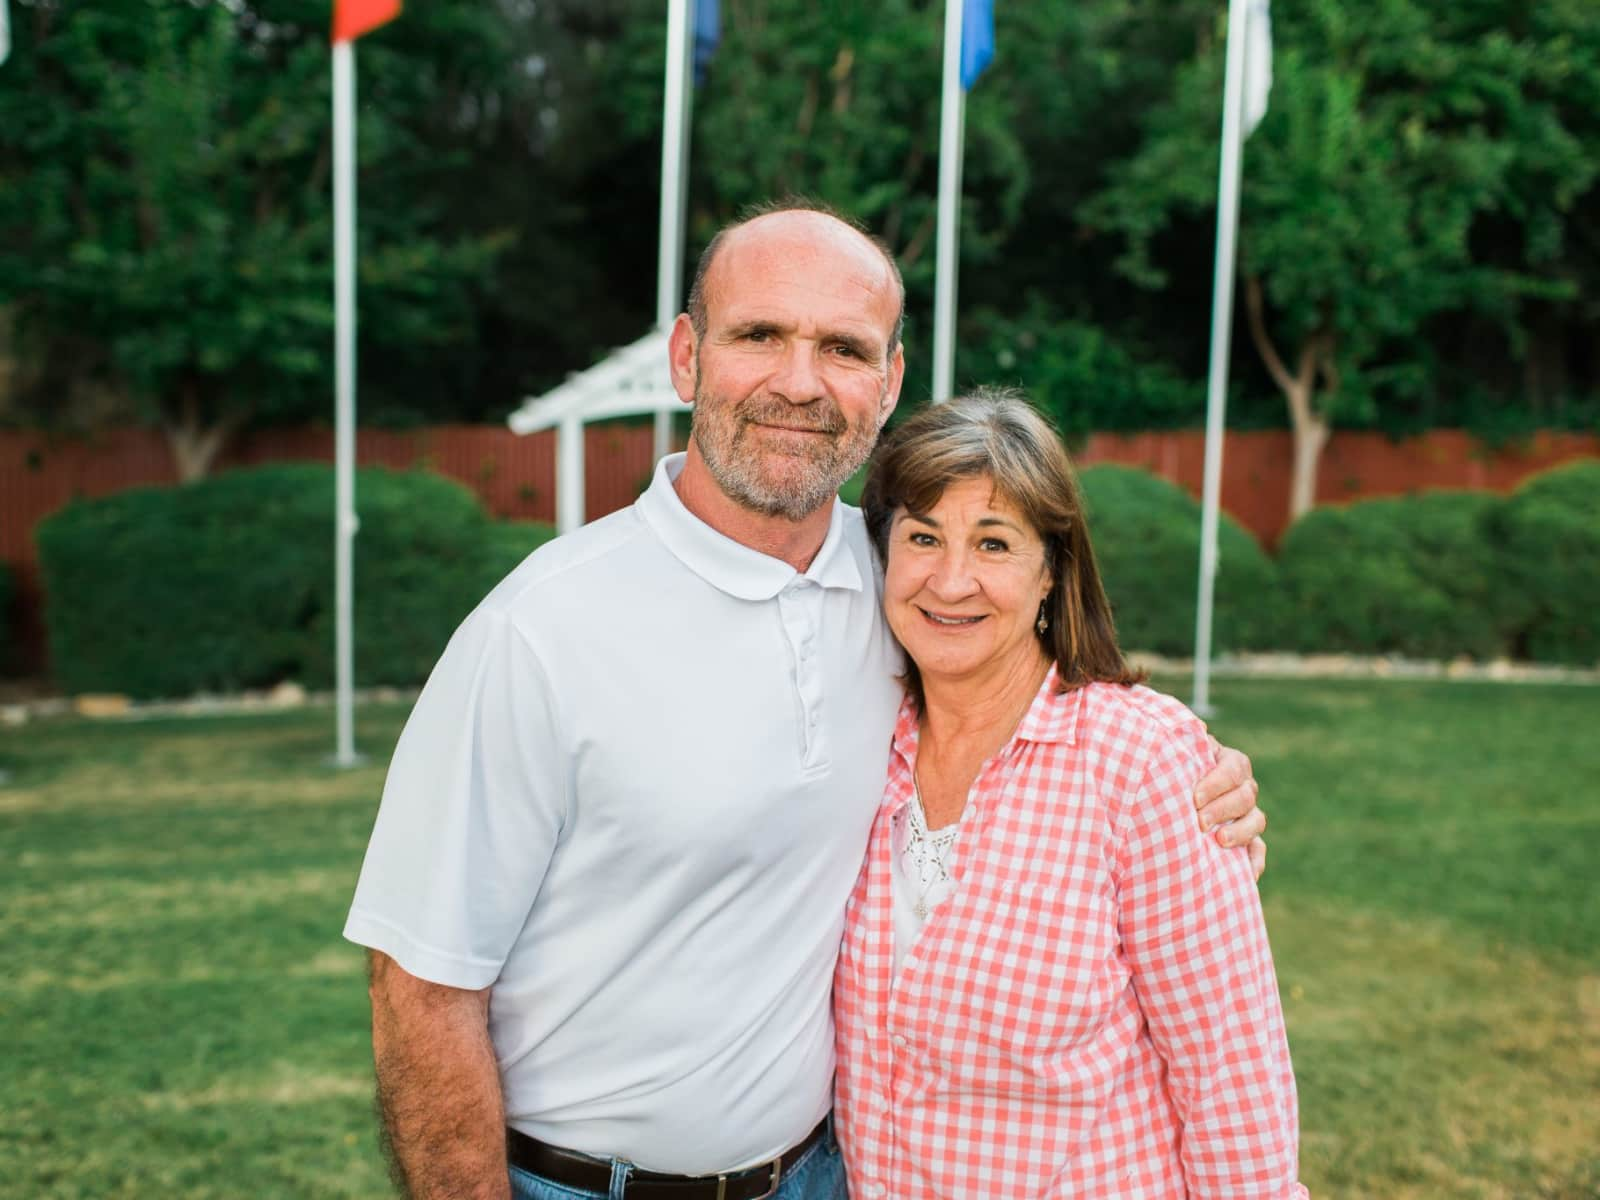 David & Patti from Folsom, California, United States